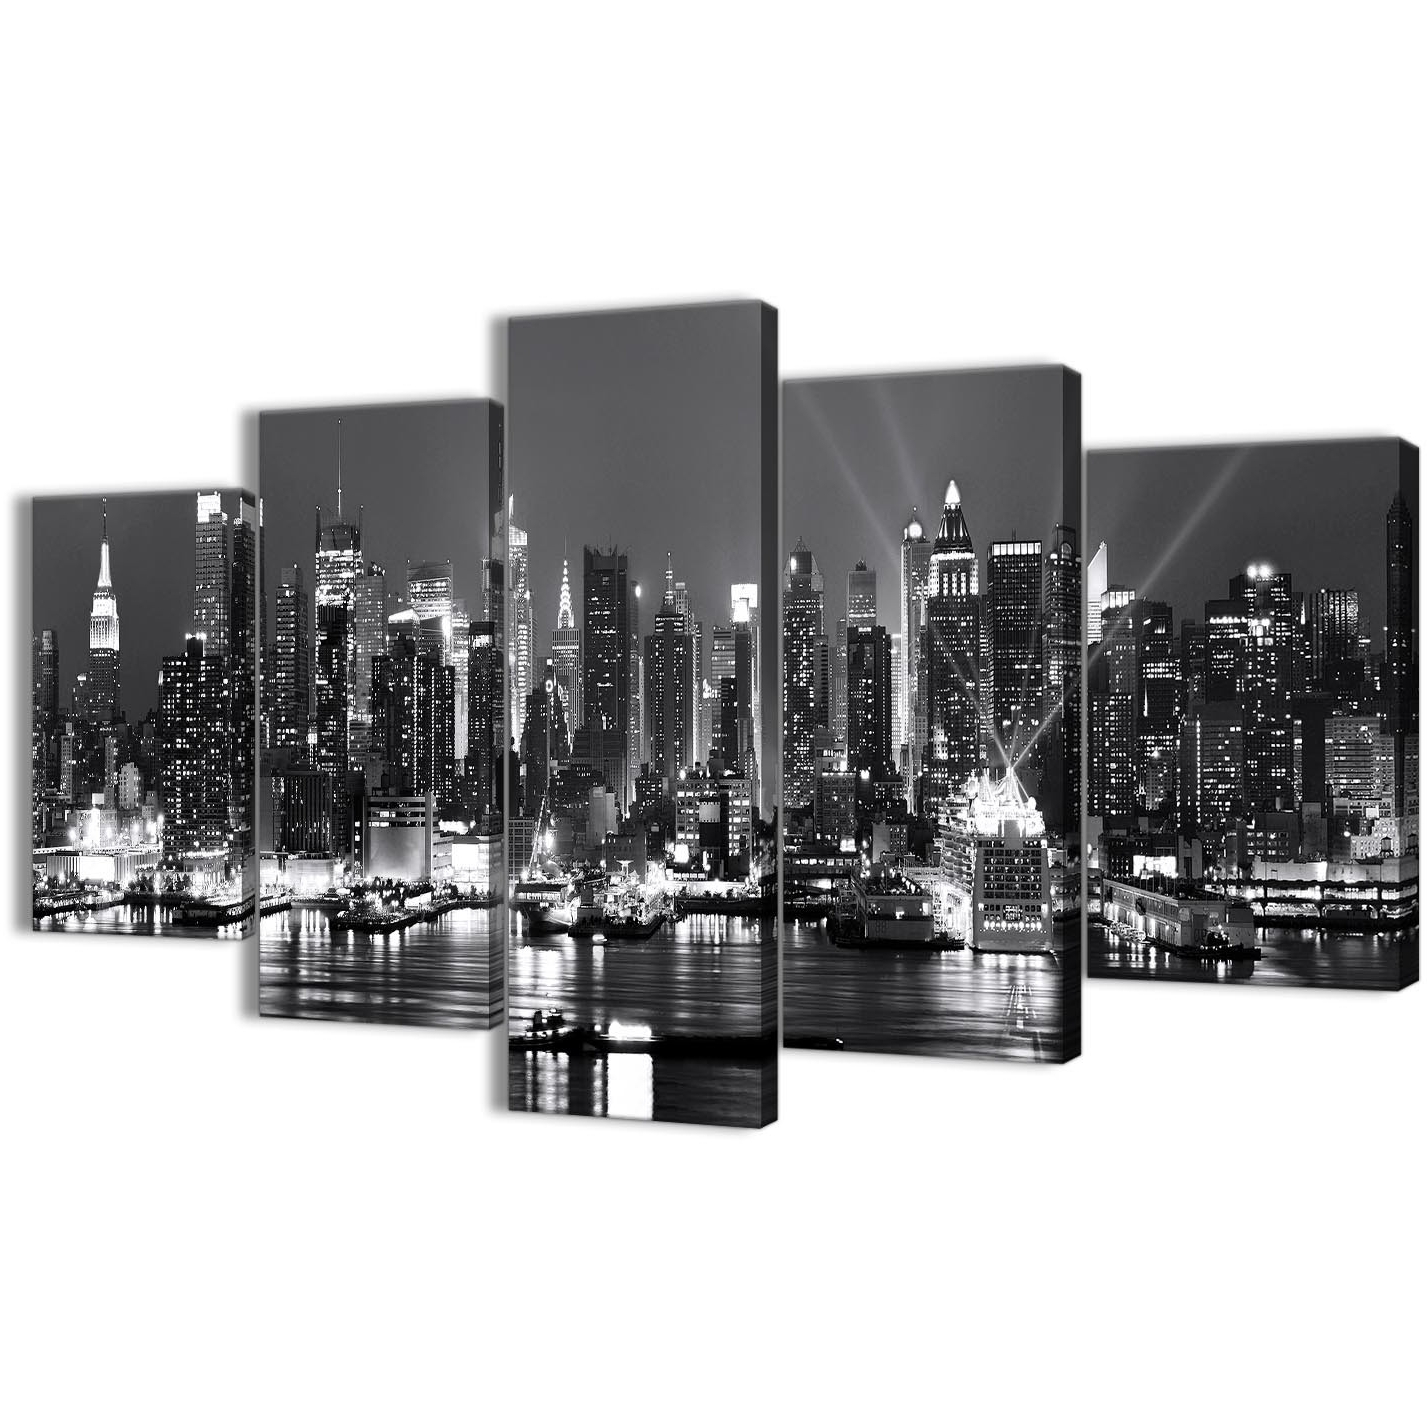 New York Wall Art Inside Most Up To Date 5 Panel Landscape Canvas Wall Art Prints – New York Hudson River (View 9 of 15)